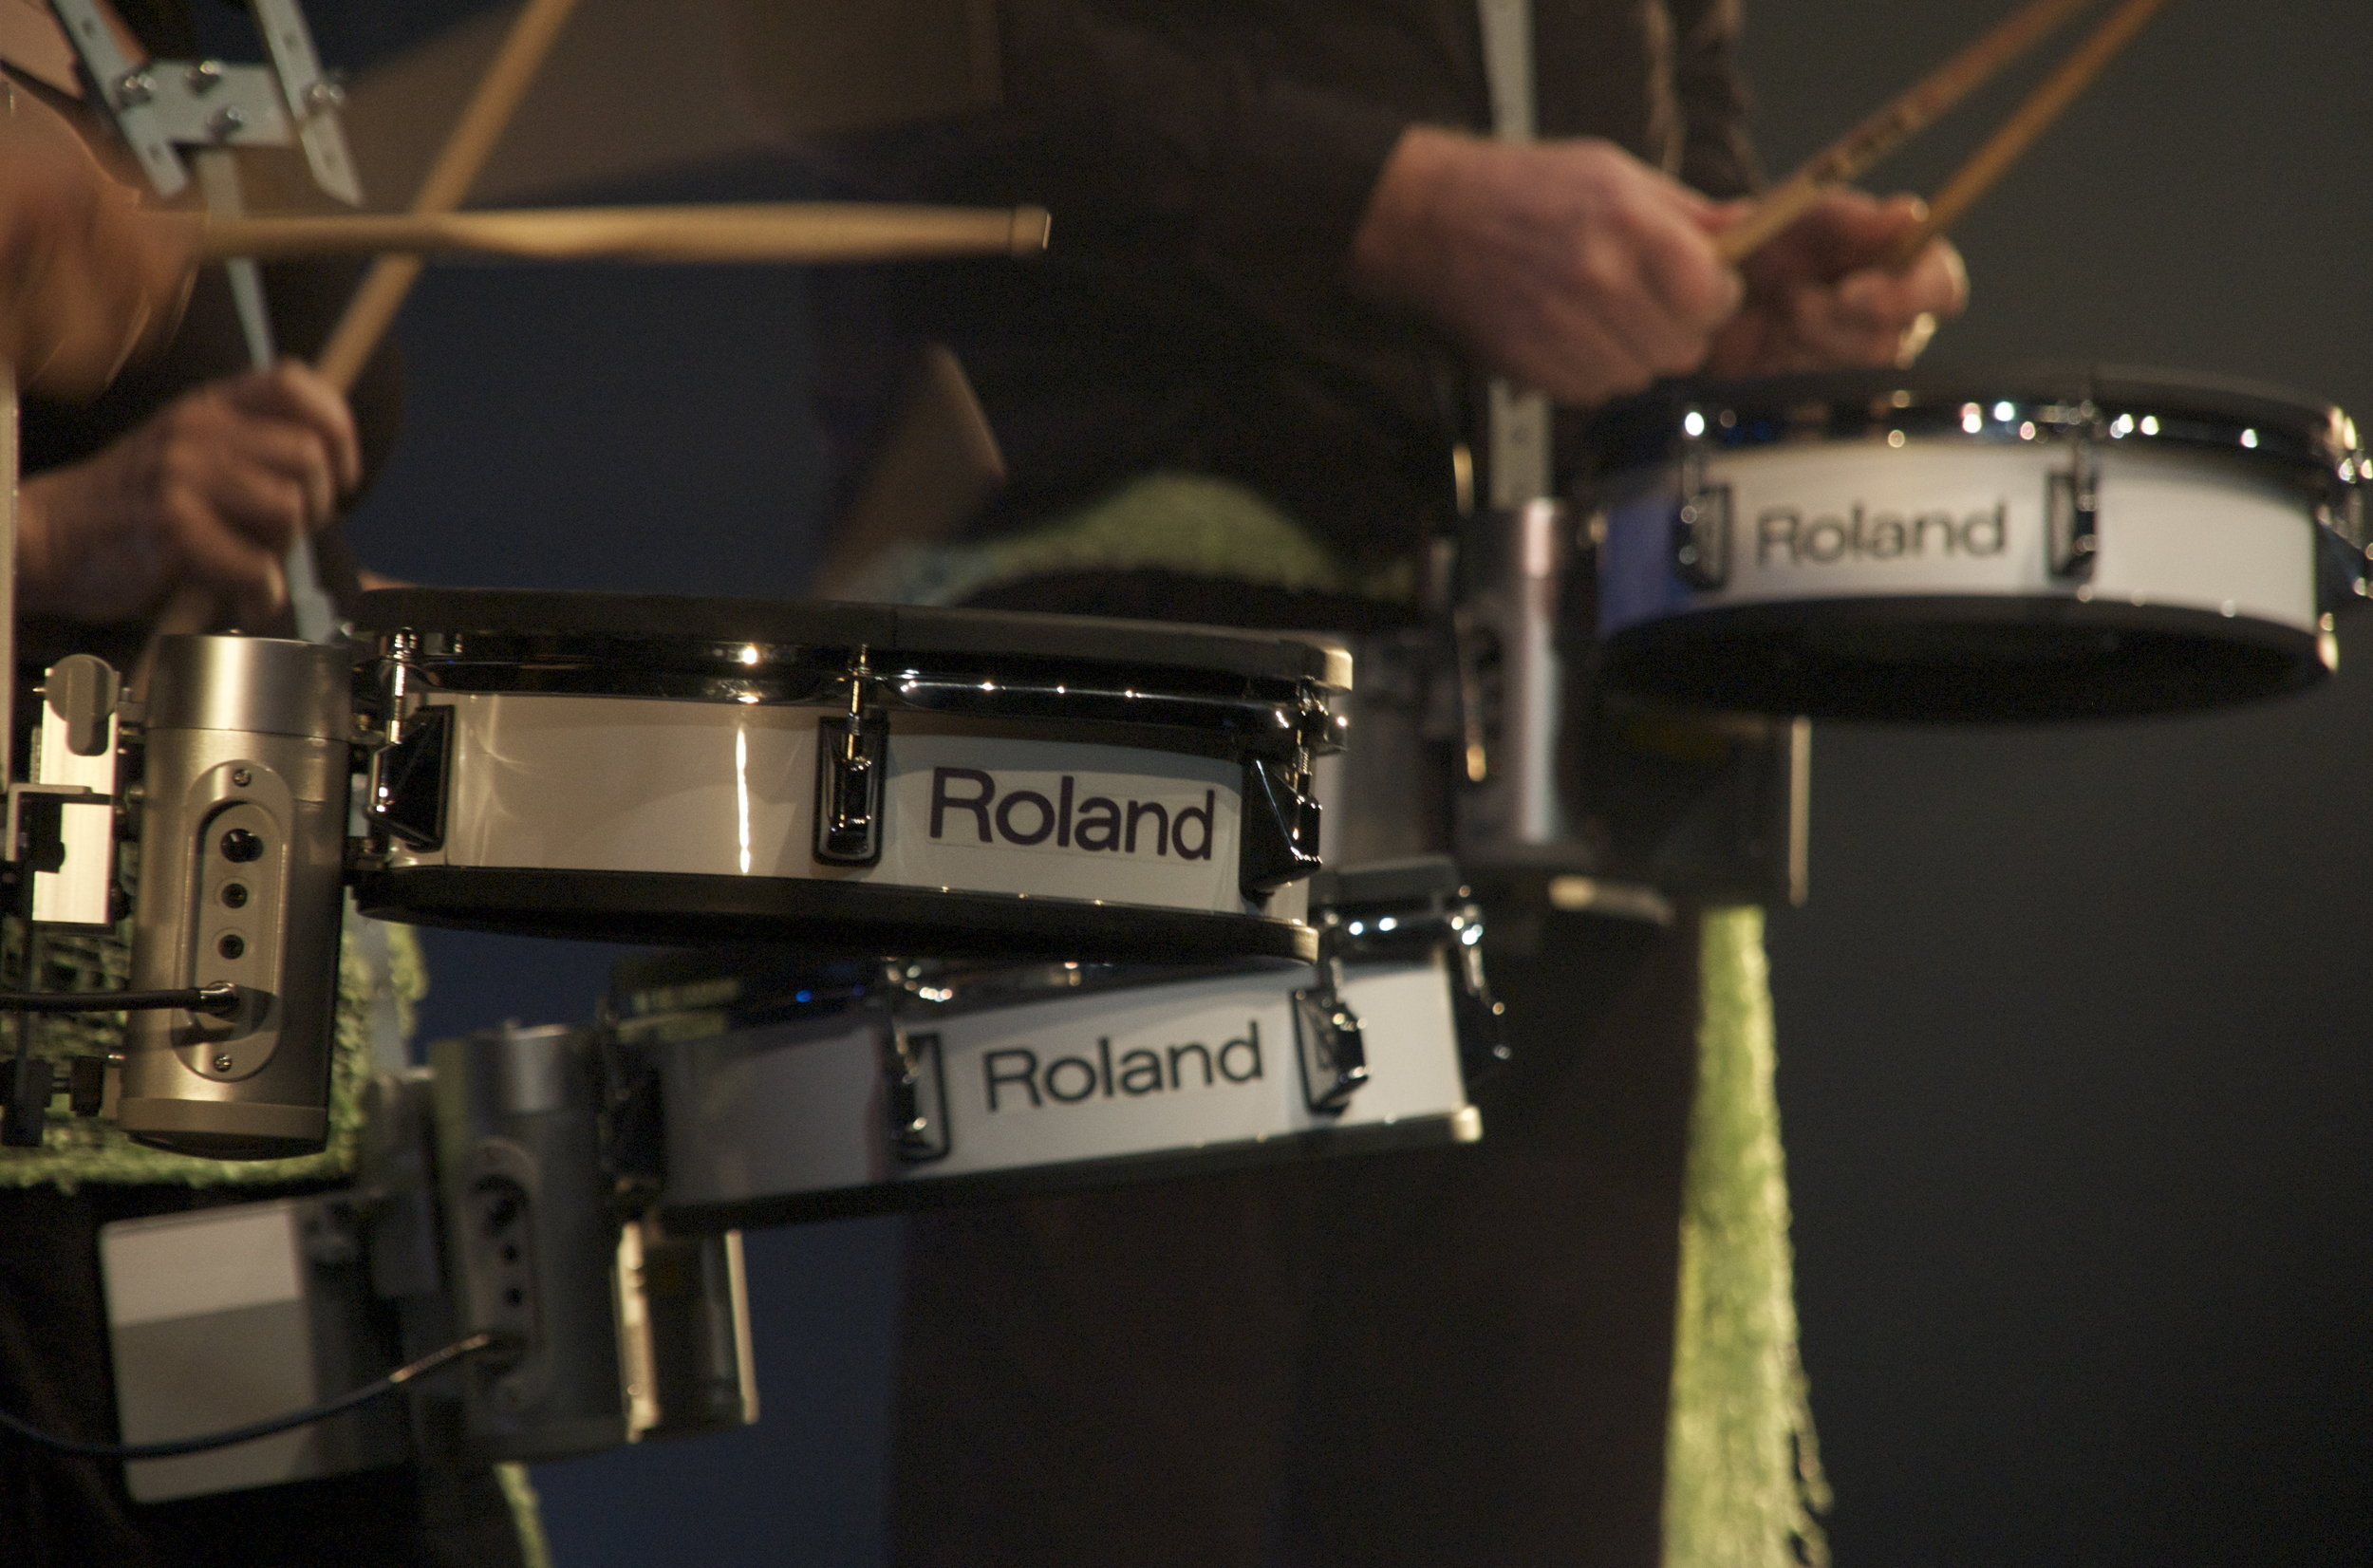 roland-v-drums-photo-shoot_5042200293_o.jpg